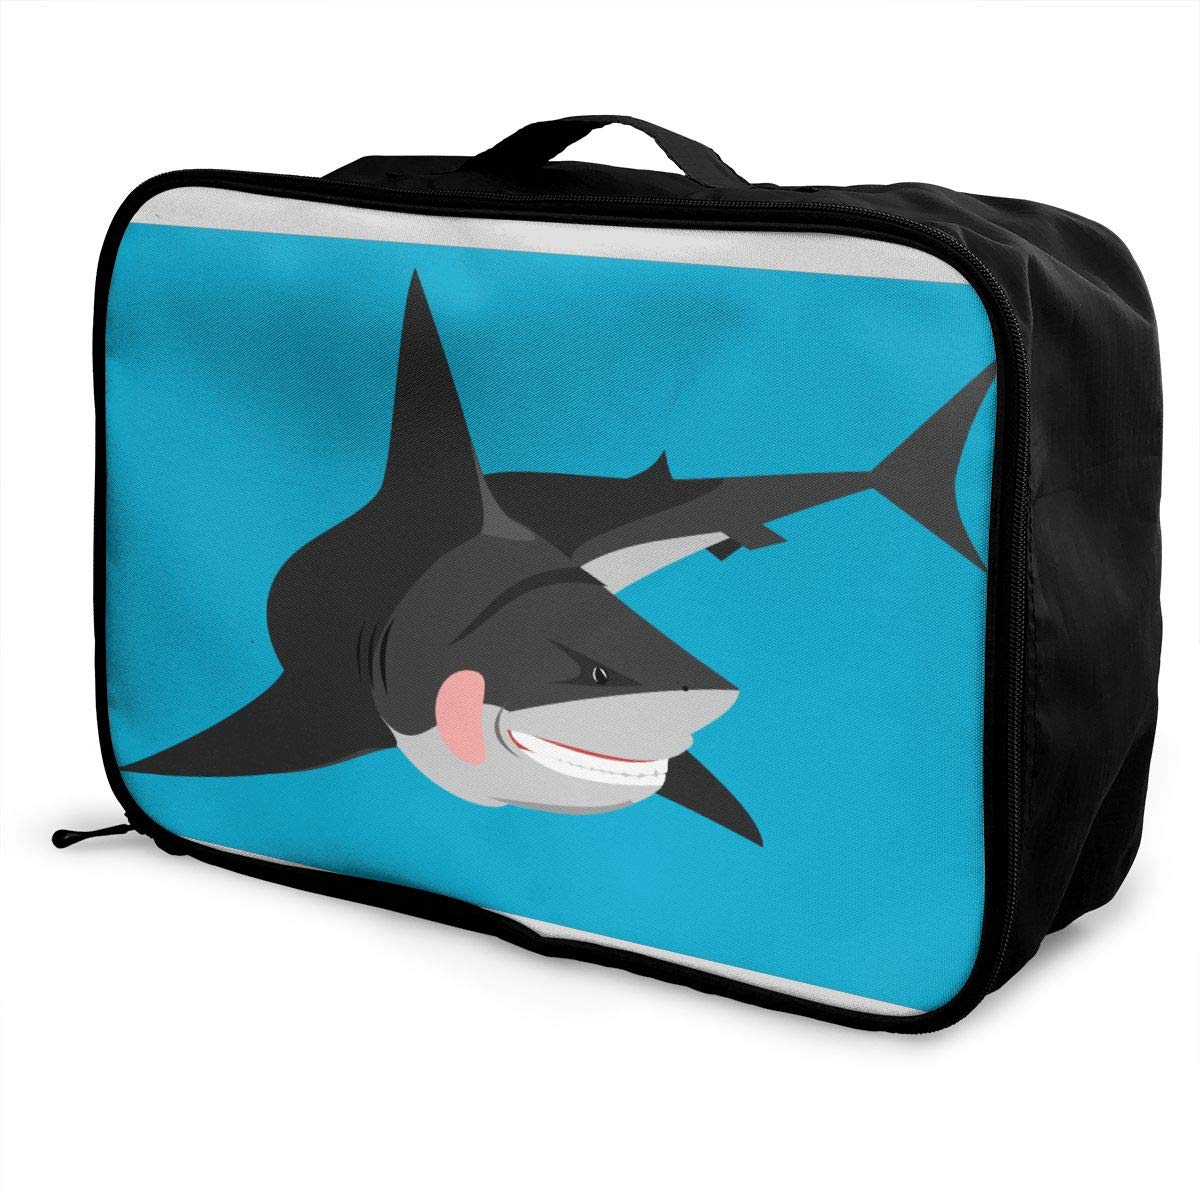 Collection Of Free Shark Customize Casual Portable Travel Bag Suitcase Storage Bag Luggage Packing Tote Bag Trolley Bag